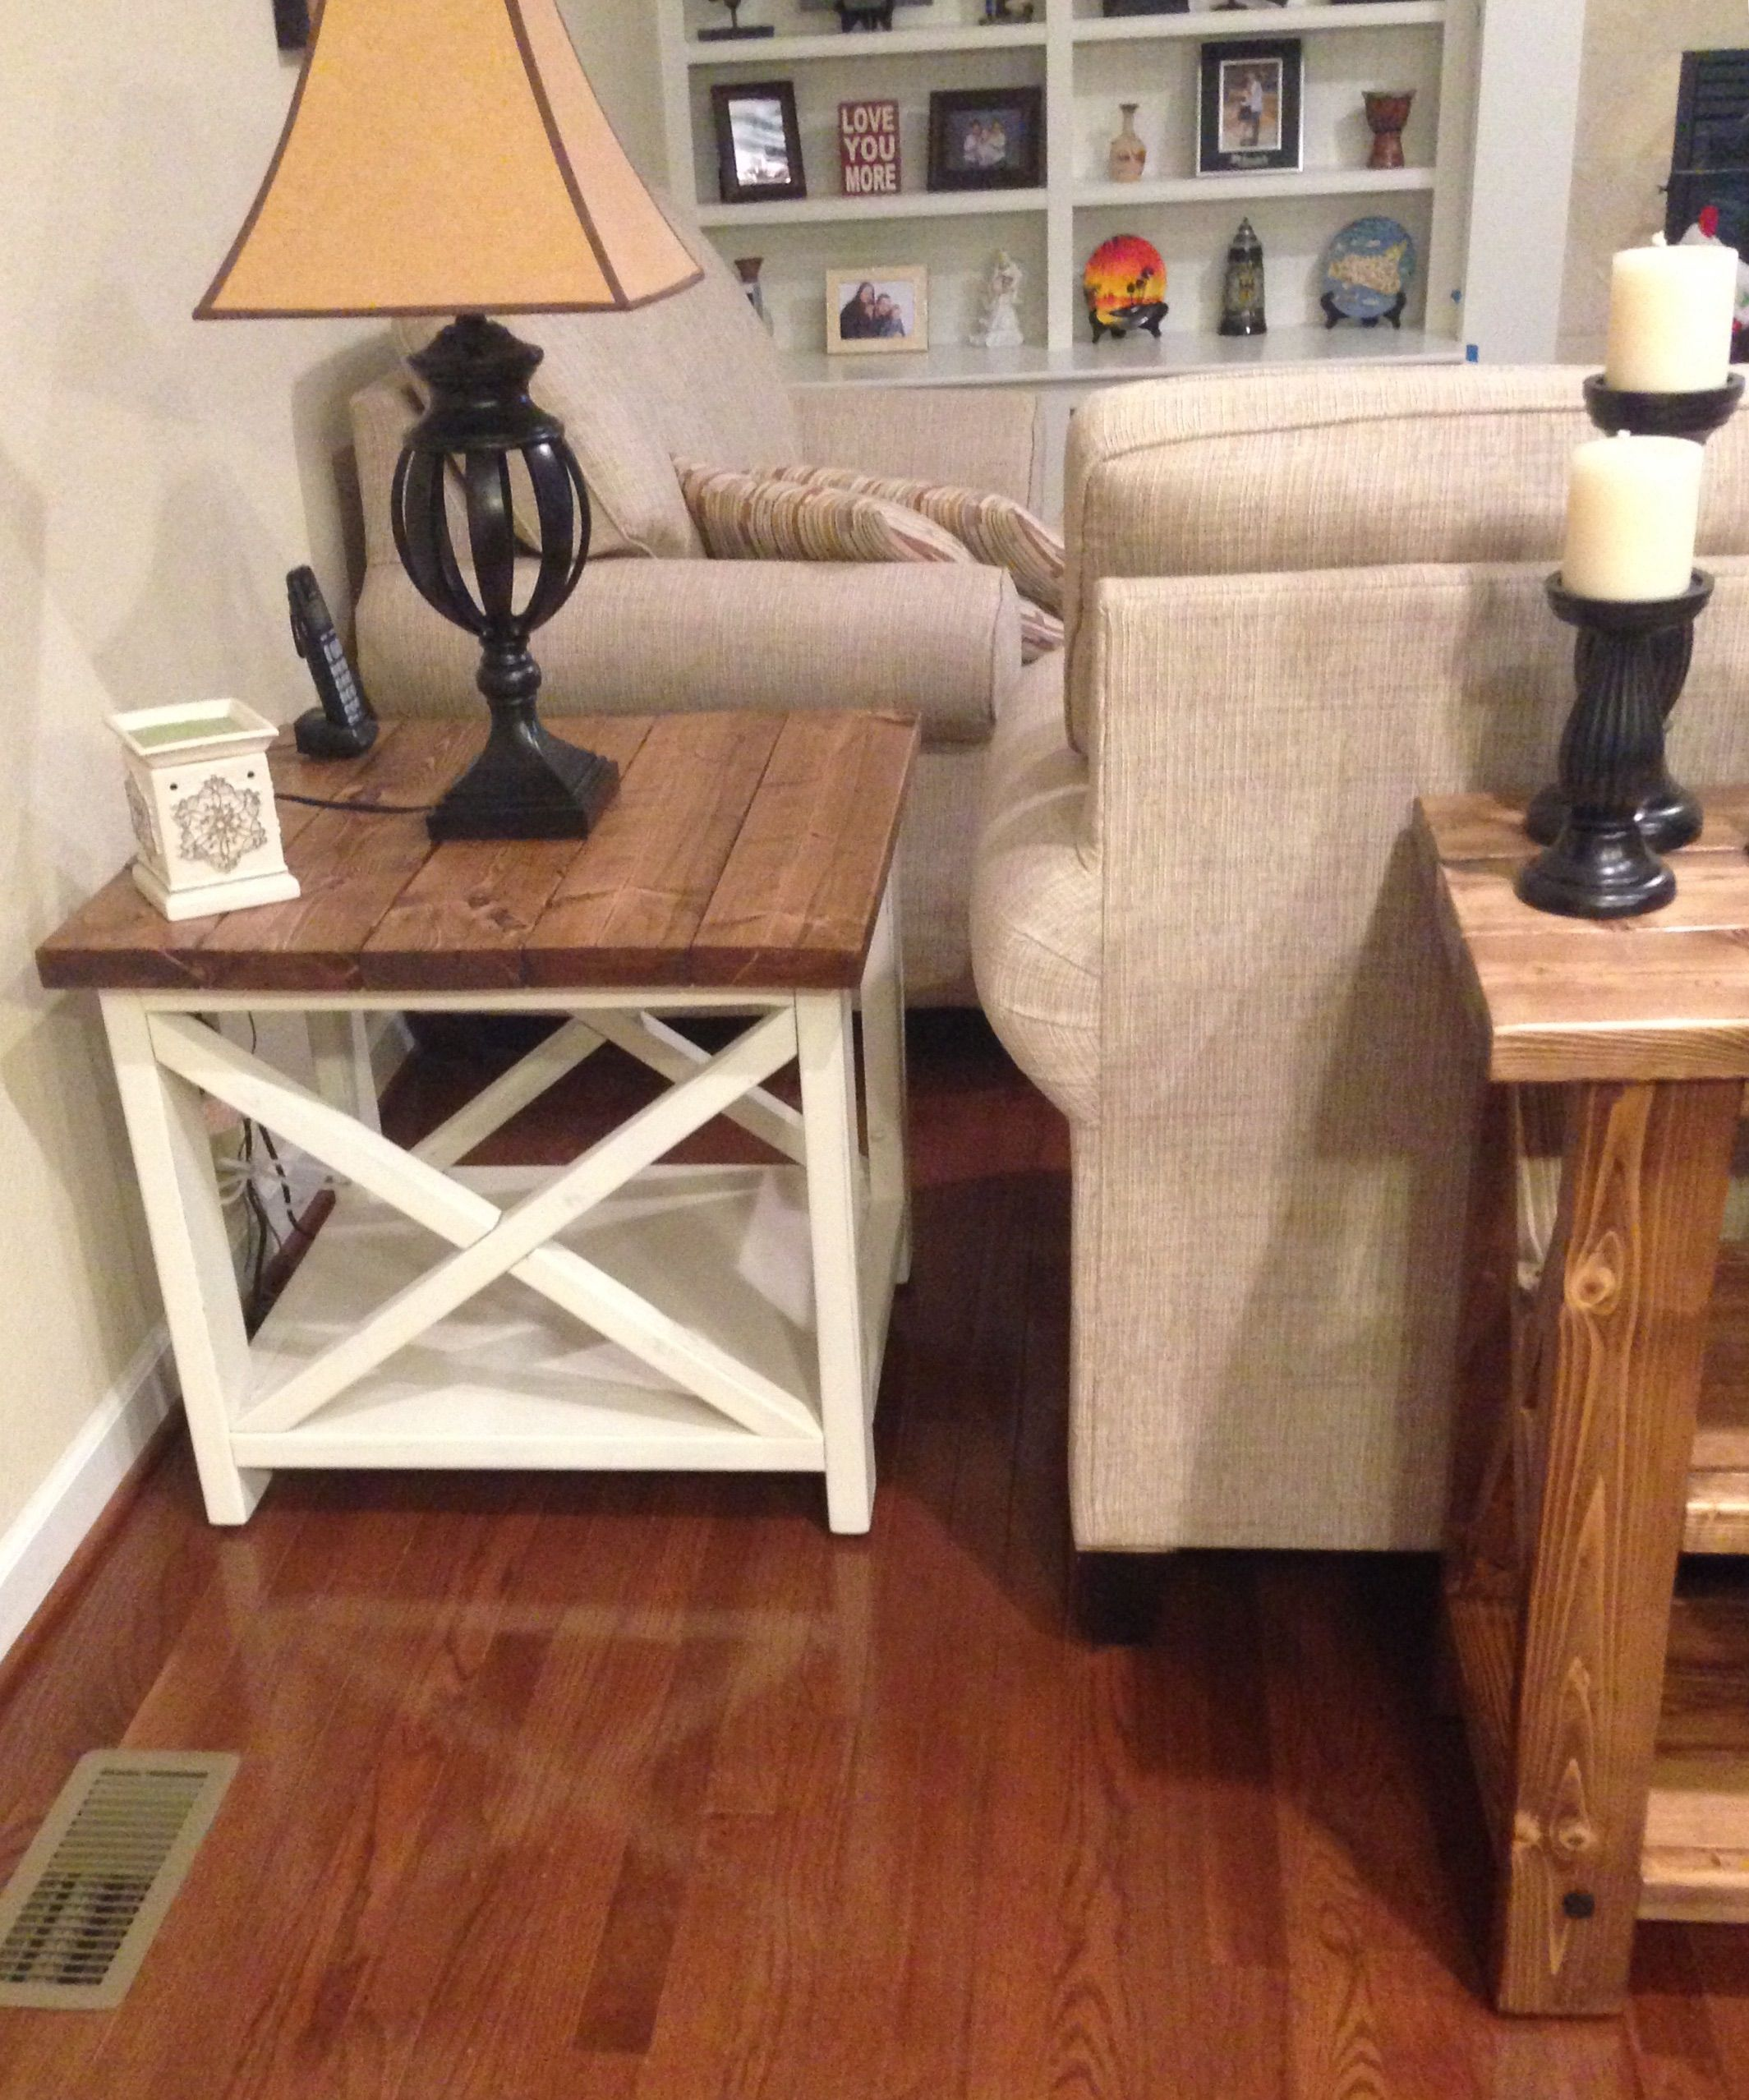 rustic end table yourself home projects from ana white accent patterned living room chairs quilted christmas runner teton village mirrored couch farmhouse breakfast furniture